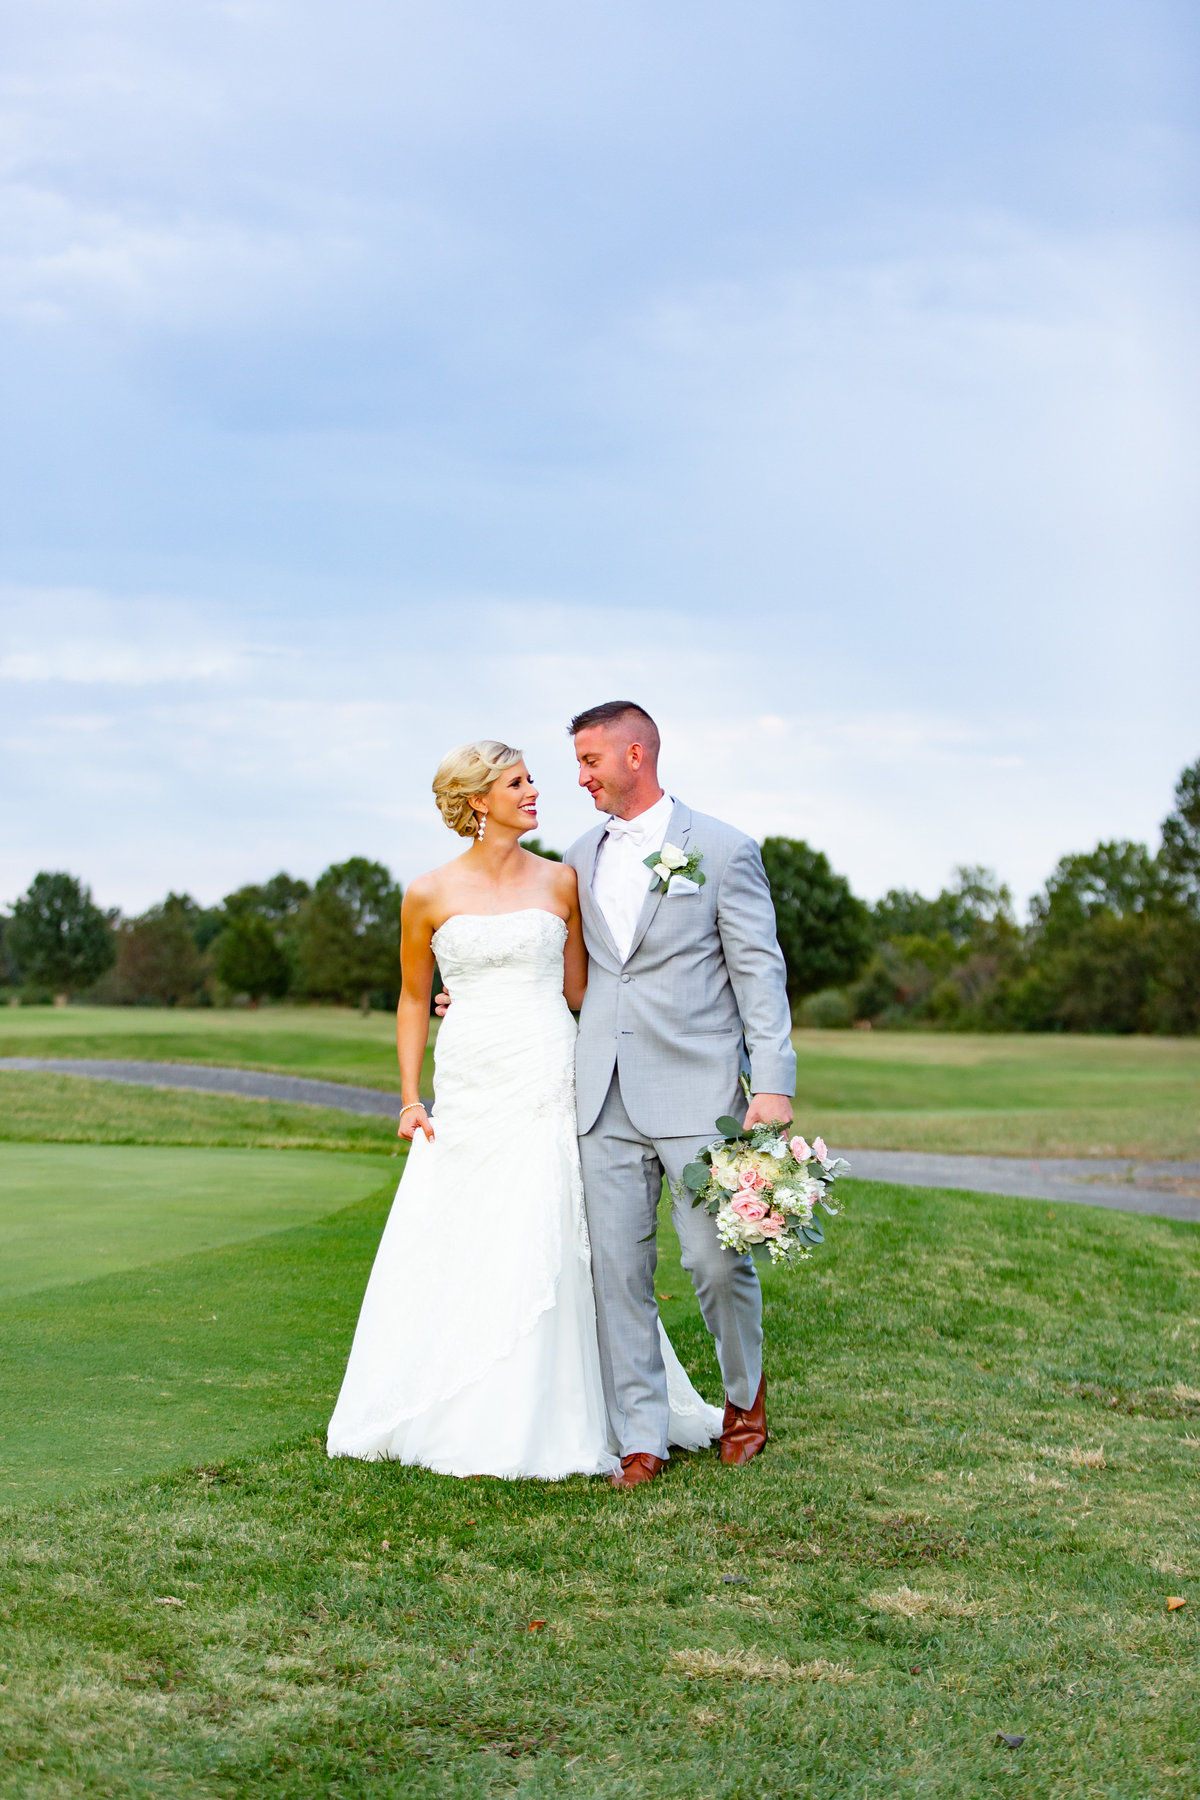 Romantic Fall Elopement  bride and groom  at Kokopelli Golf Club  in Southern Illinois  by Amy Britton Photography Photographer in St. Louis